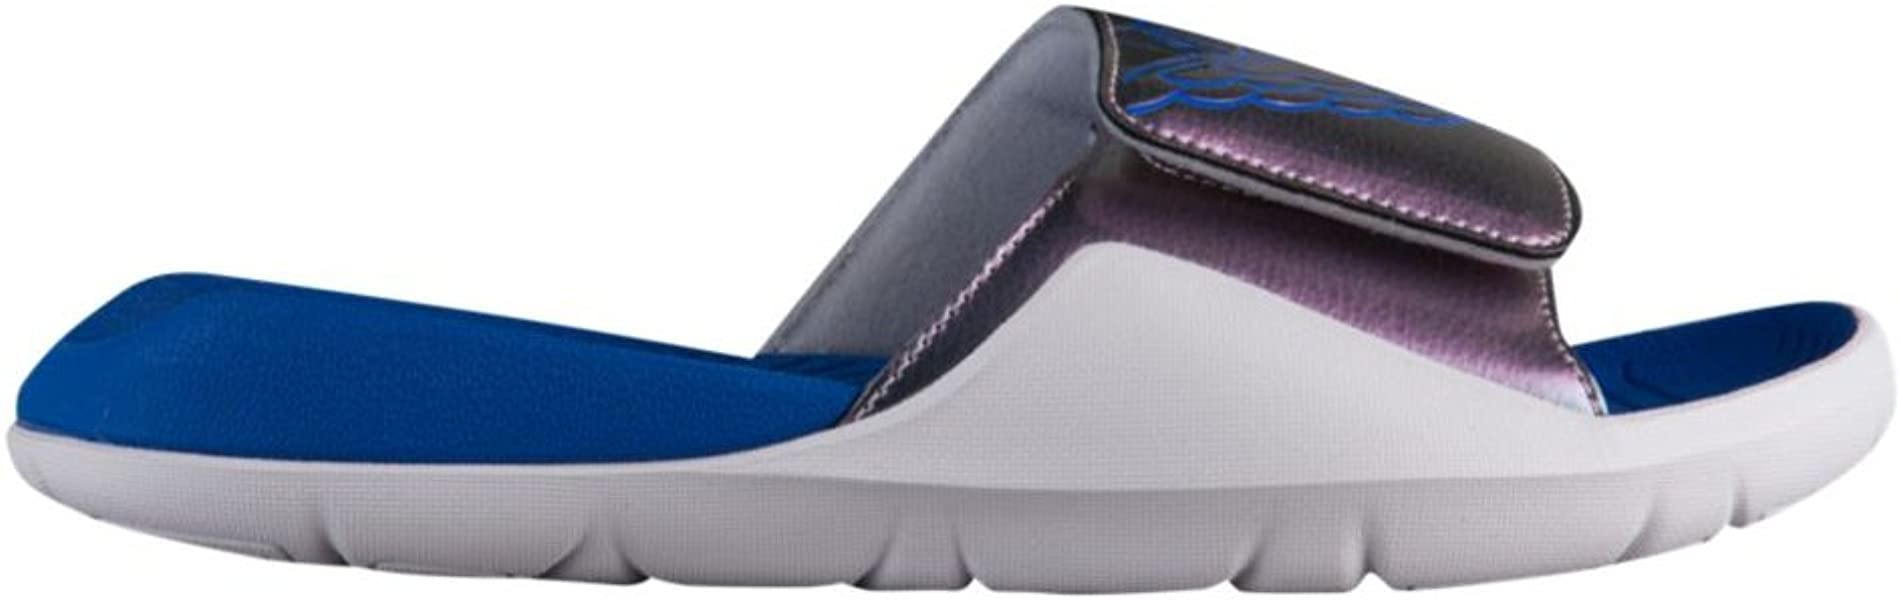 386a4c293d2f Nike Grade School Air Jordan Hydro 7 Retro Slide Sandals Wolf Grey Hyper  Royal